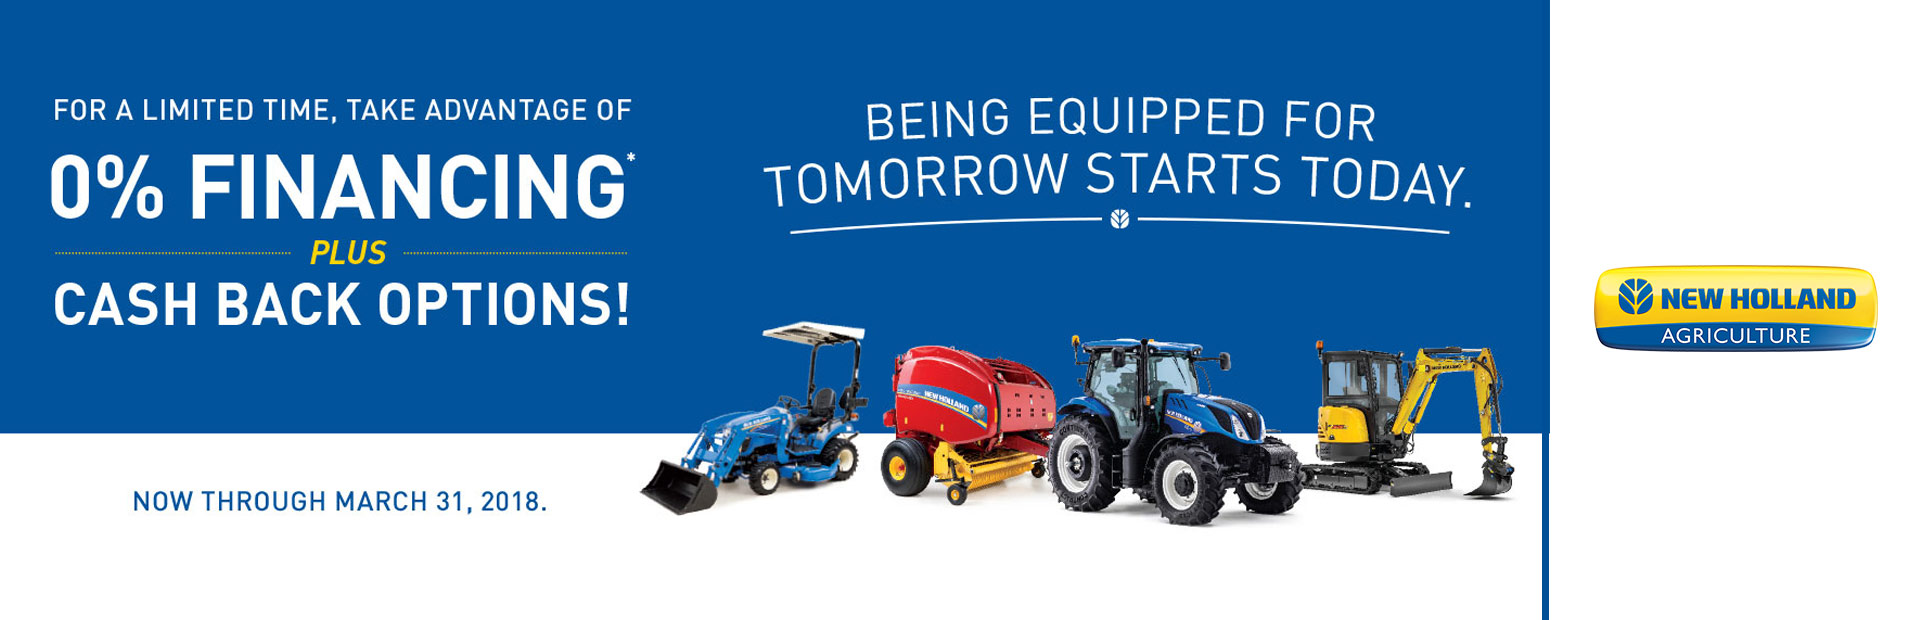 New Holland Agriculture: 0% Financing Plus Cash Back Options!